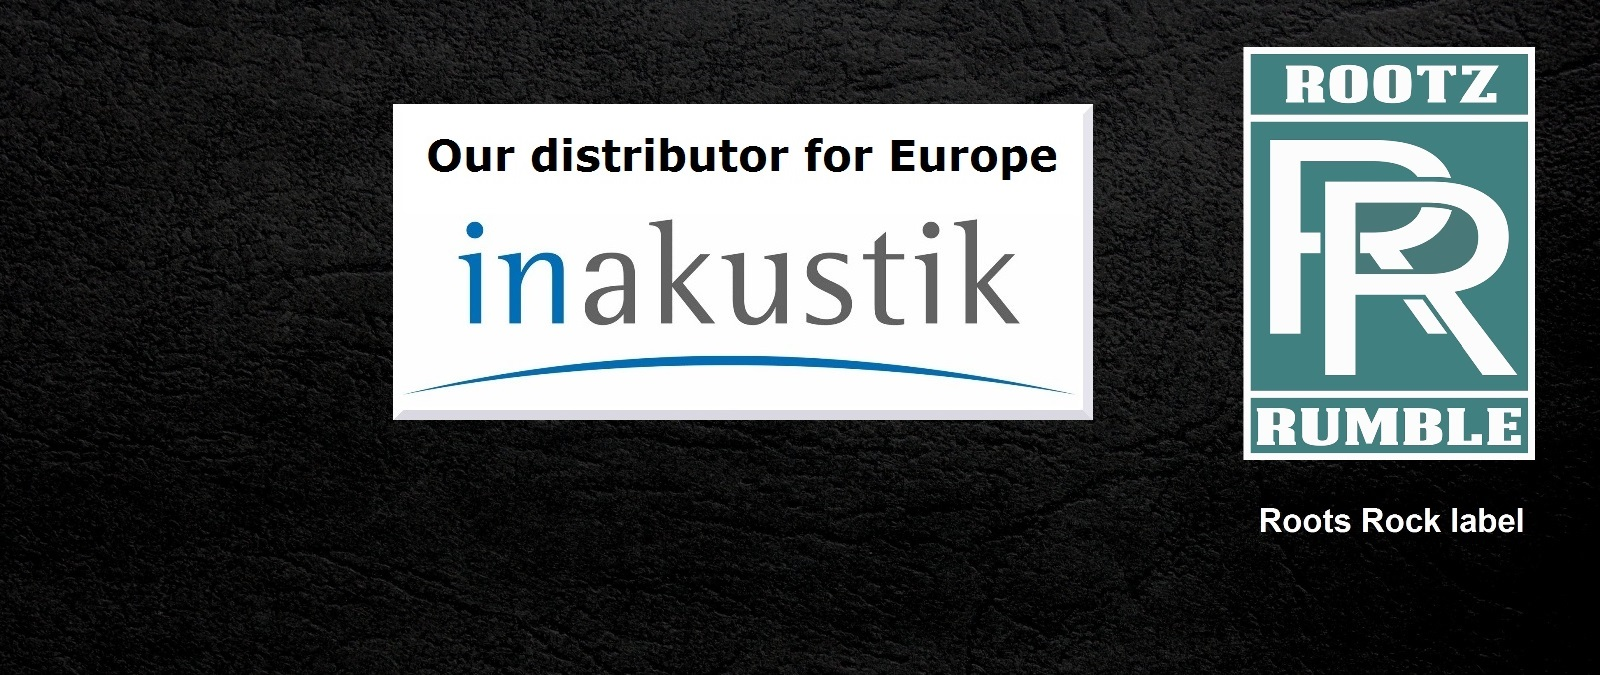 distributor for Europe